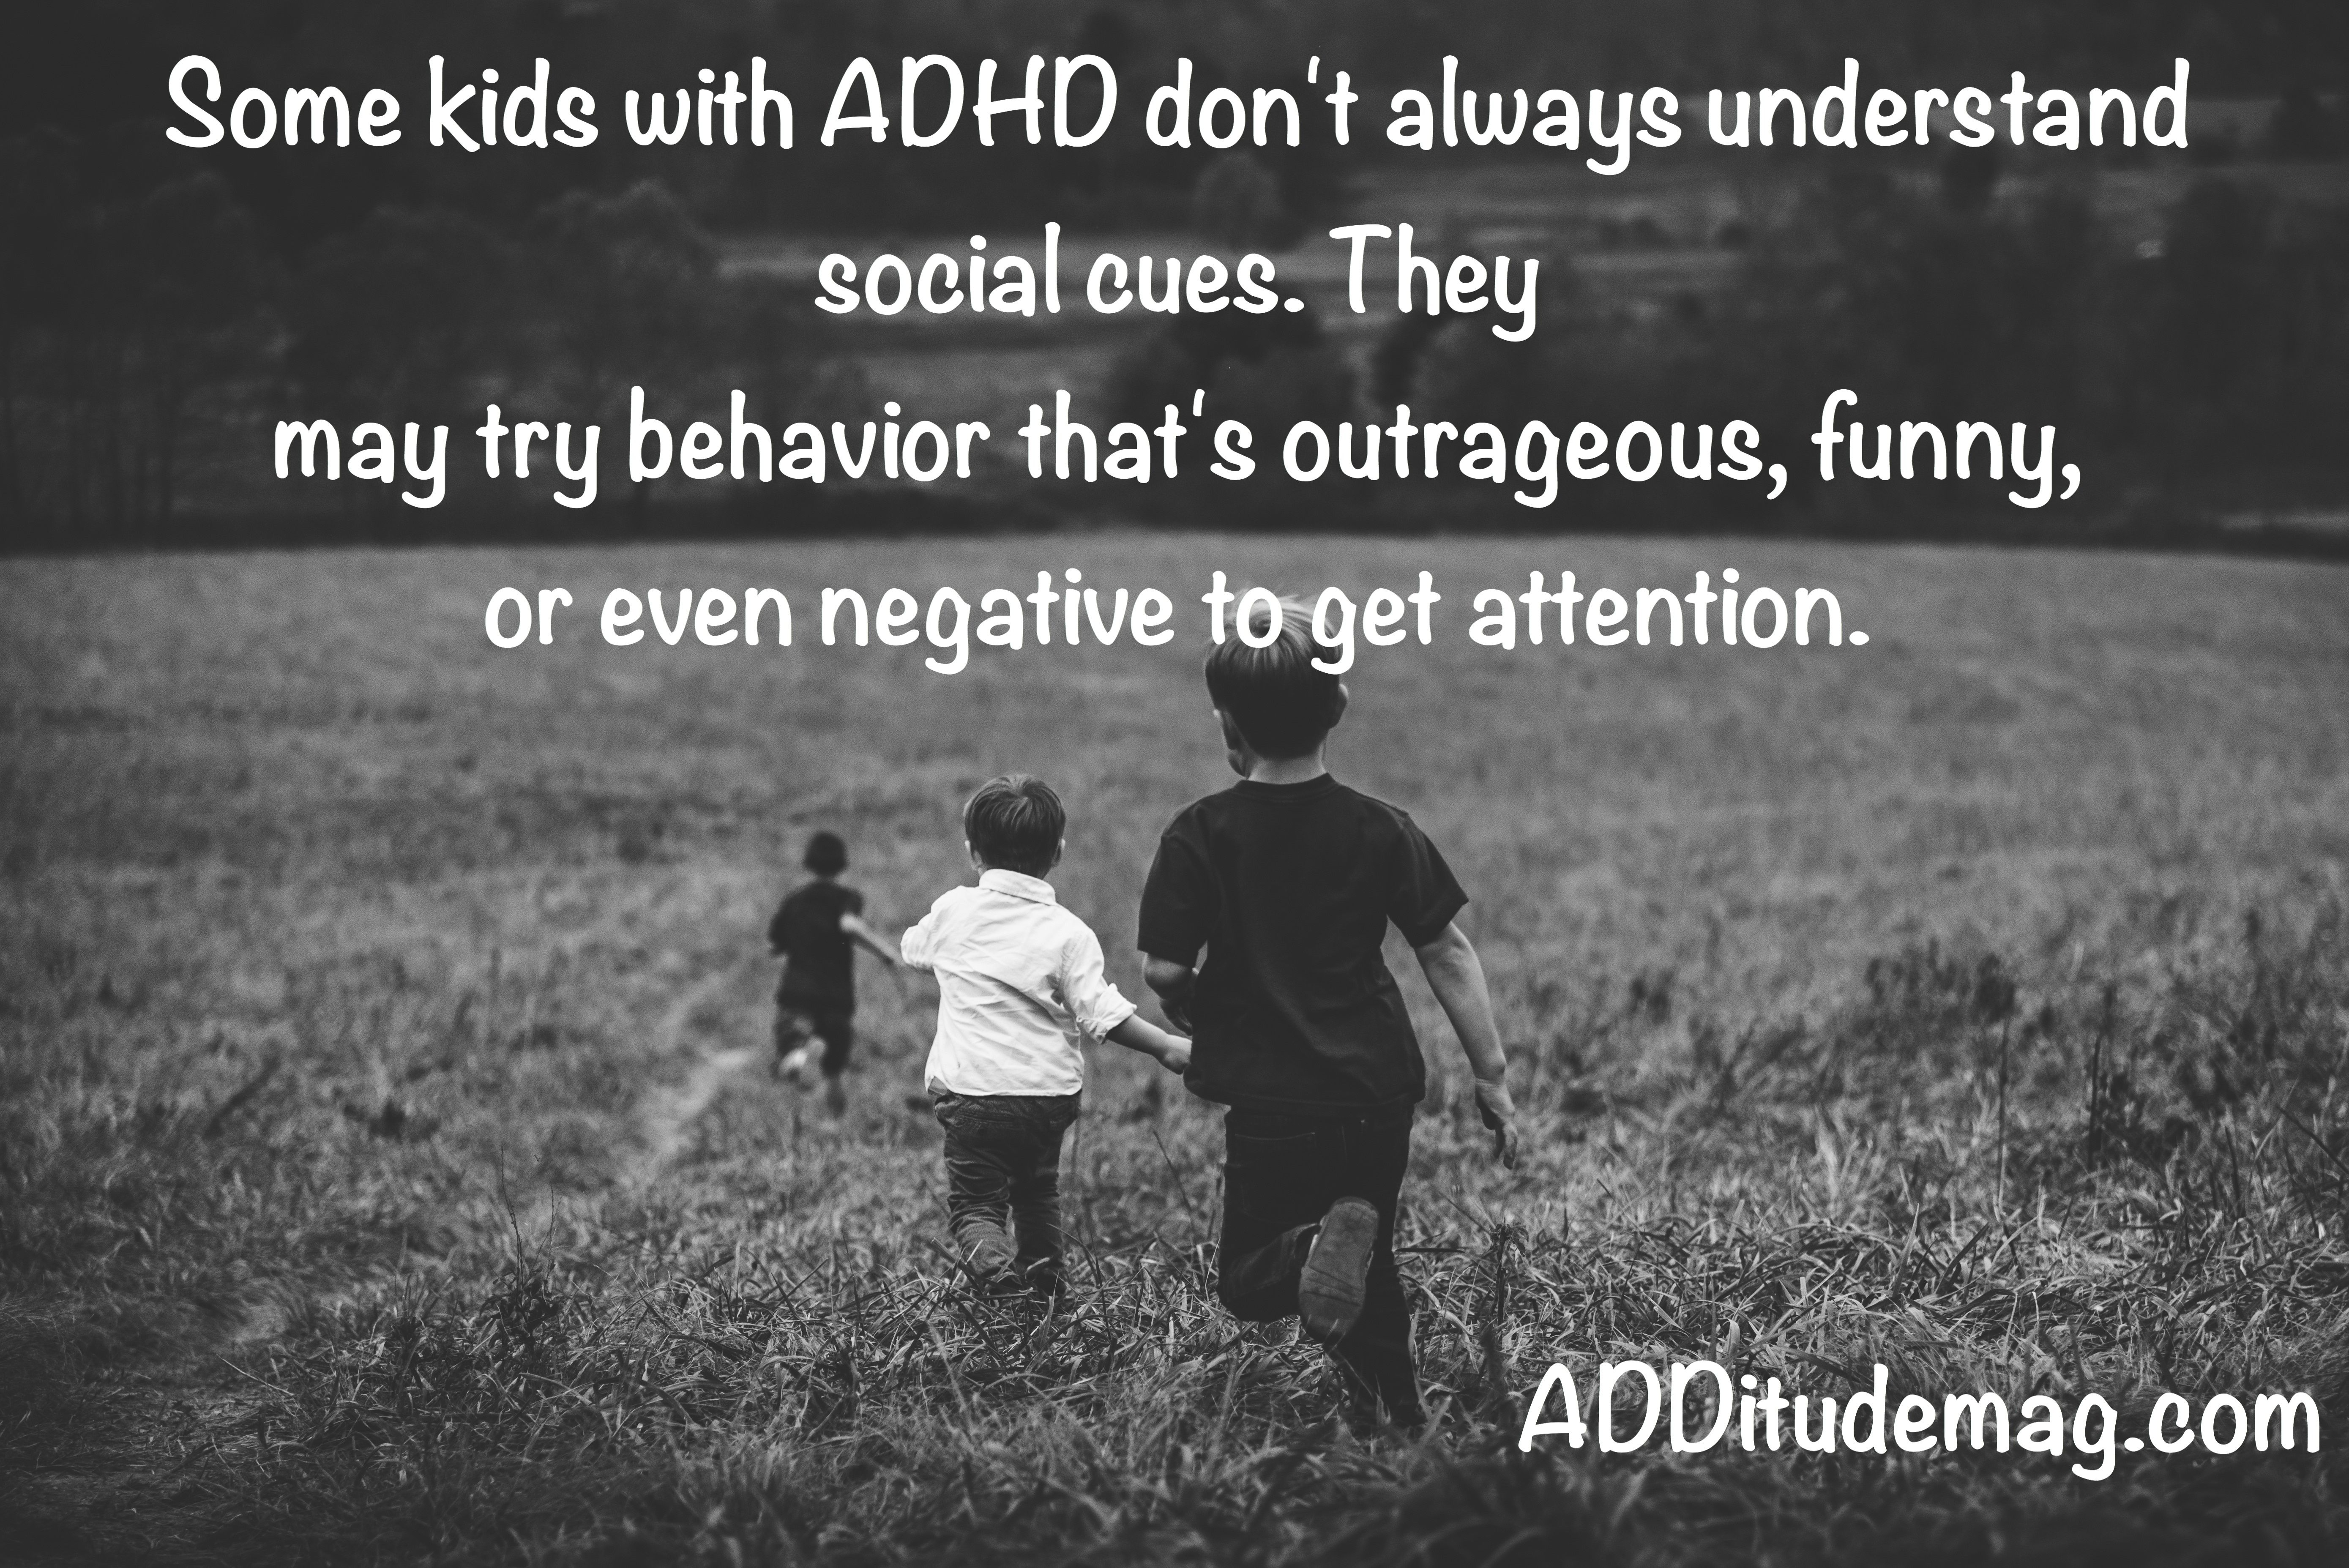 Adhd Parenting 4 Mindfulness Techniques >> Help for Socially Immature Kids | Parenting ADHD Children